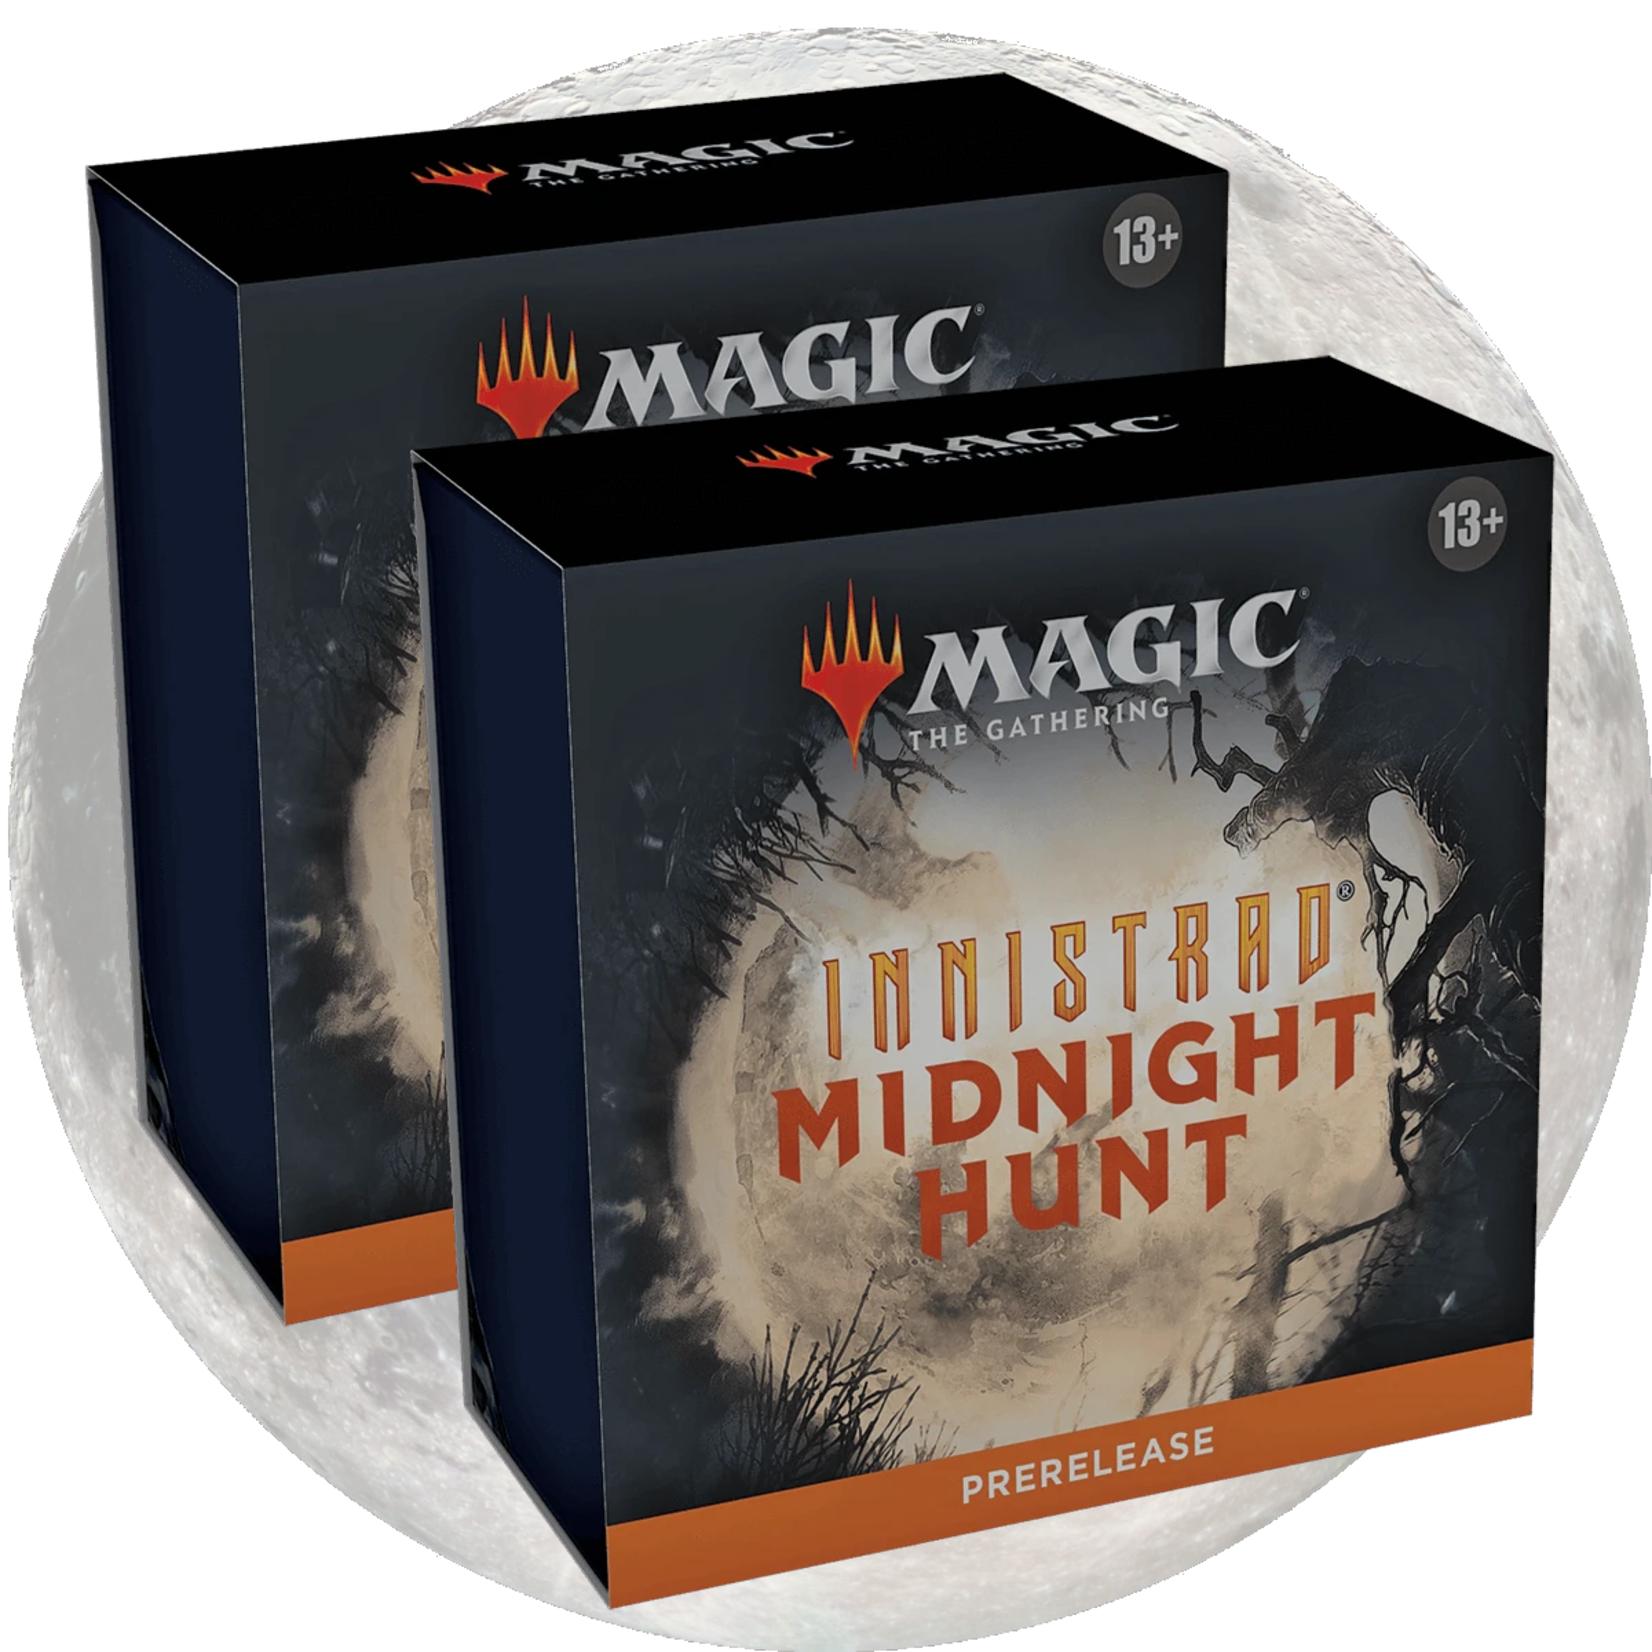 Wizards of the Coast Magic the Gathering: Midnight Hunt - Two-Headed Giant Prerelease Event (Sept 19 Downers Grove 5 PM)